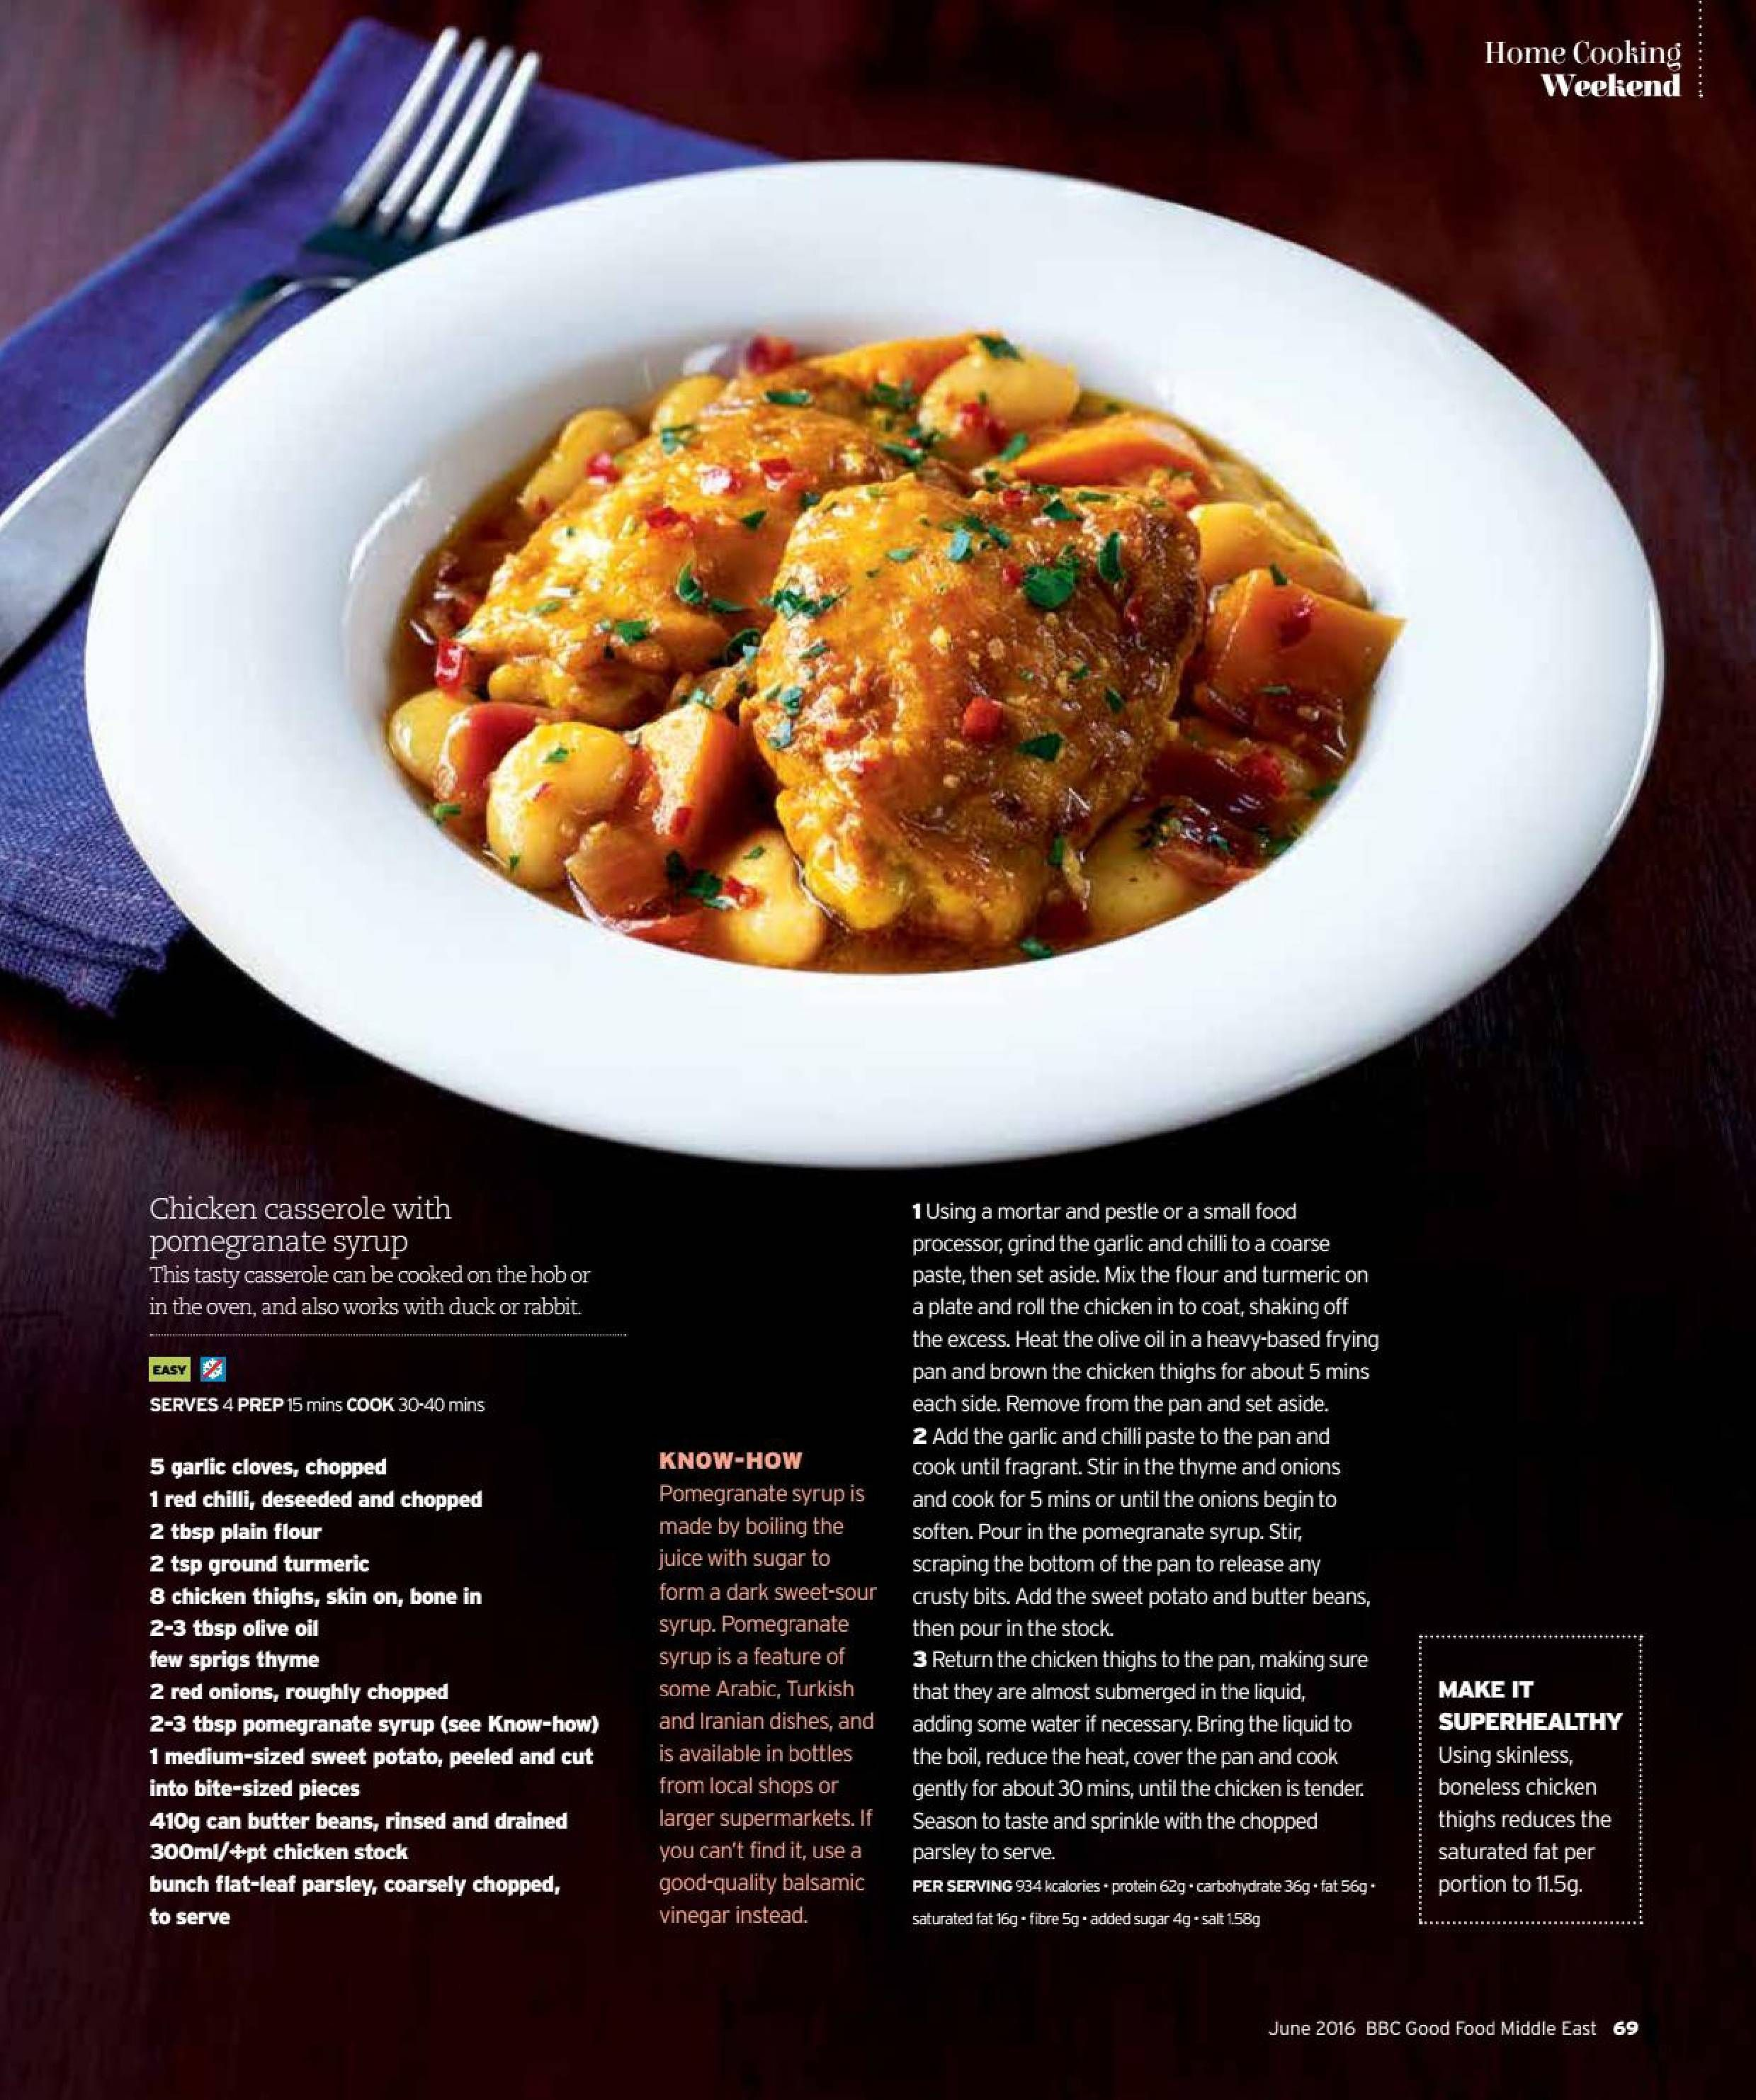 Chicken casserole with pomegranate syrup recipe bbc good food get your digital copy of bbc good food me magazine june 2016 issue on magzter and enjoy reading it on ipad iphone android devices and the web forumfinder Images